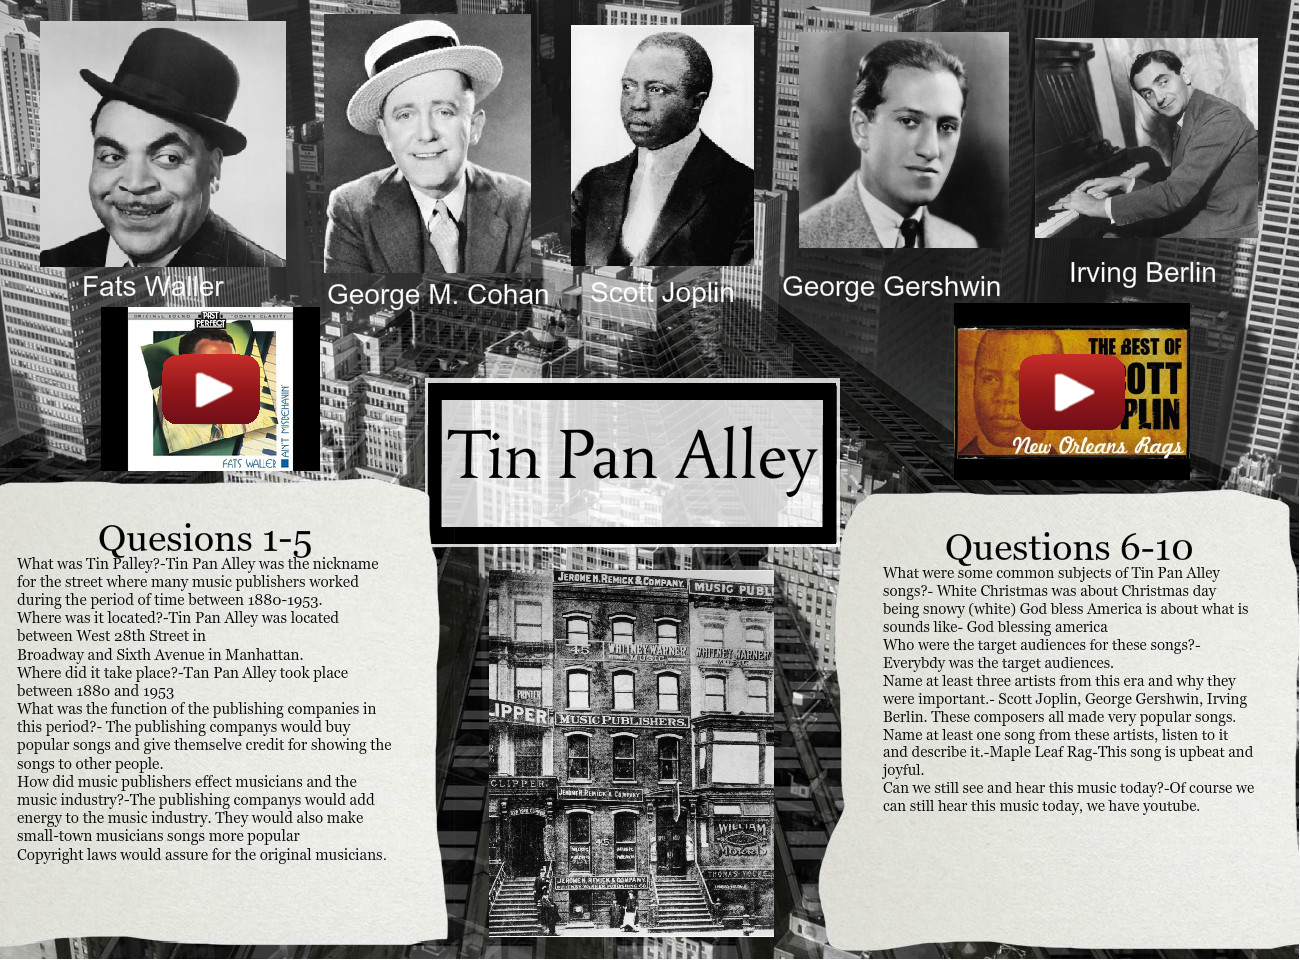 [2016] Mikey Crispino: Tin Pan Alley